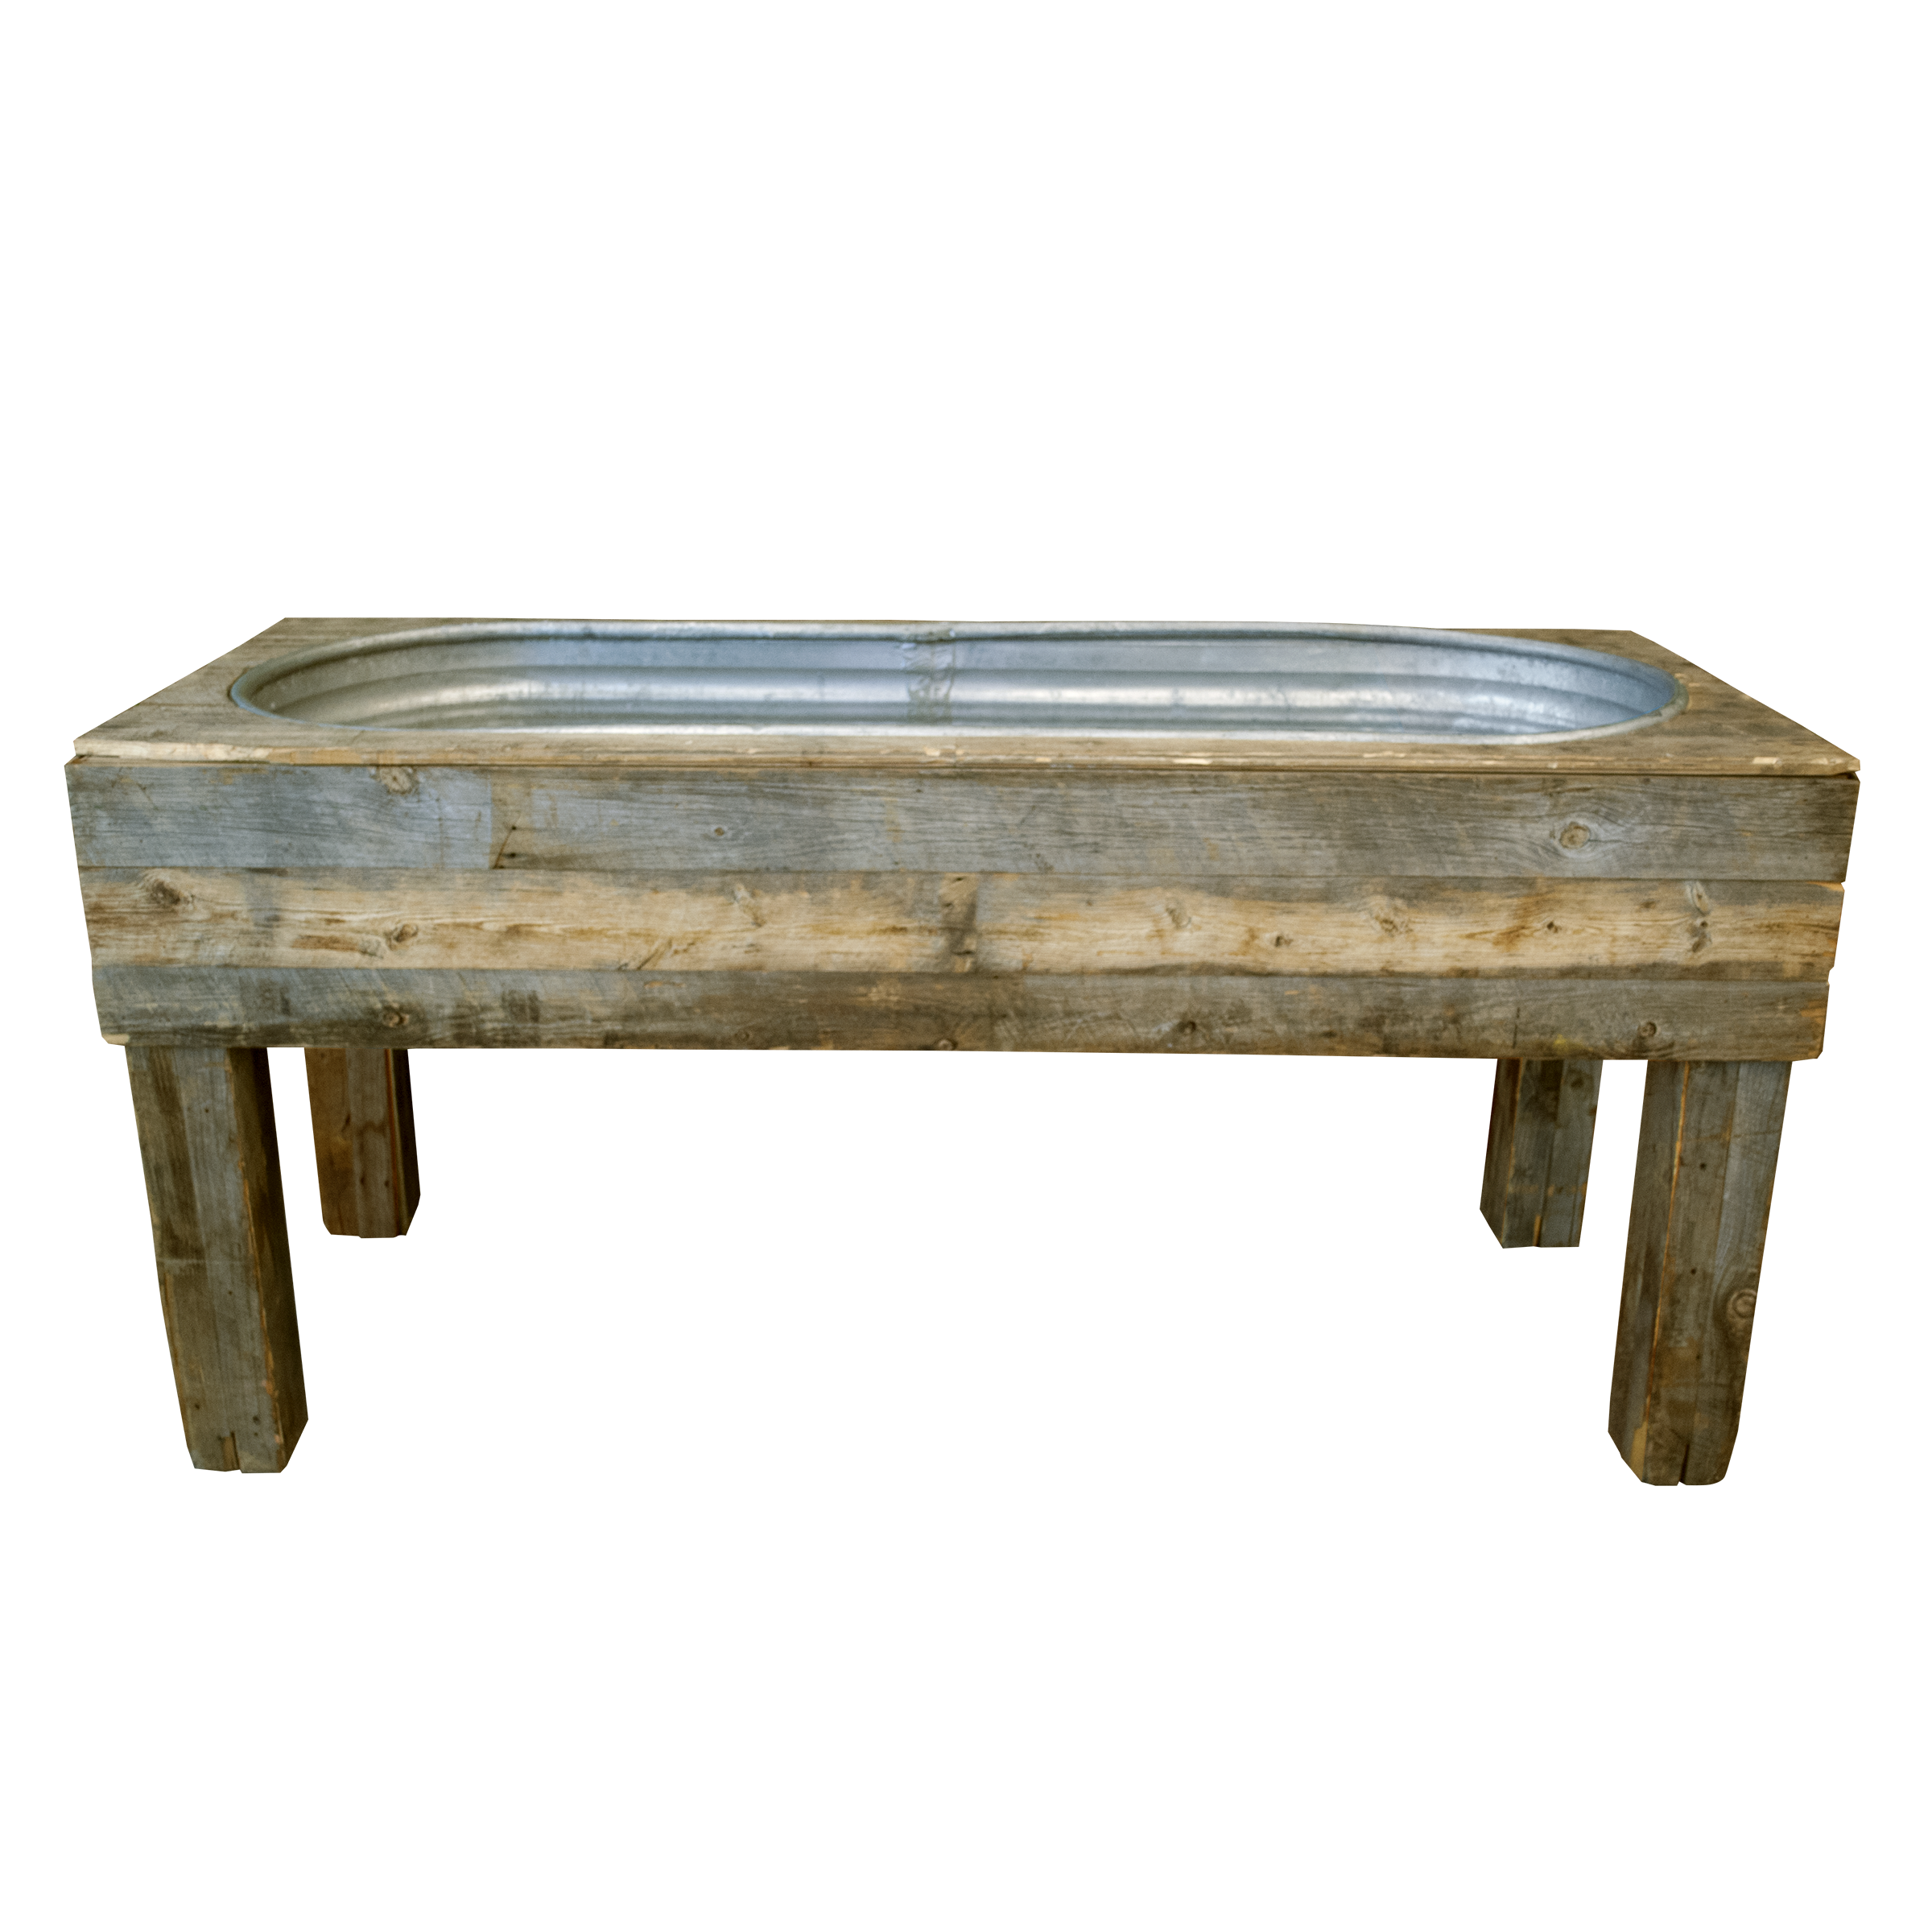 Galvanized Trough With Wood Stand